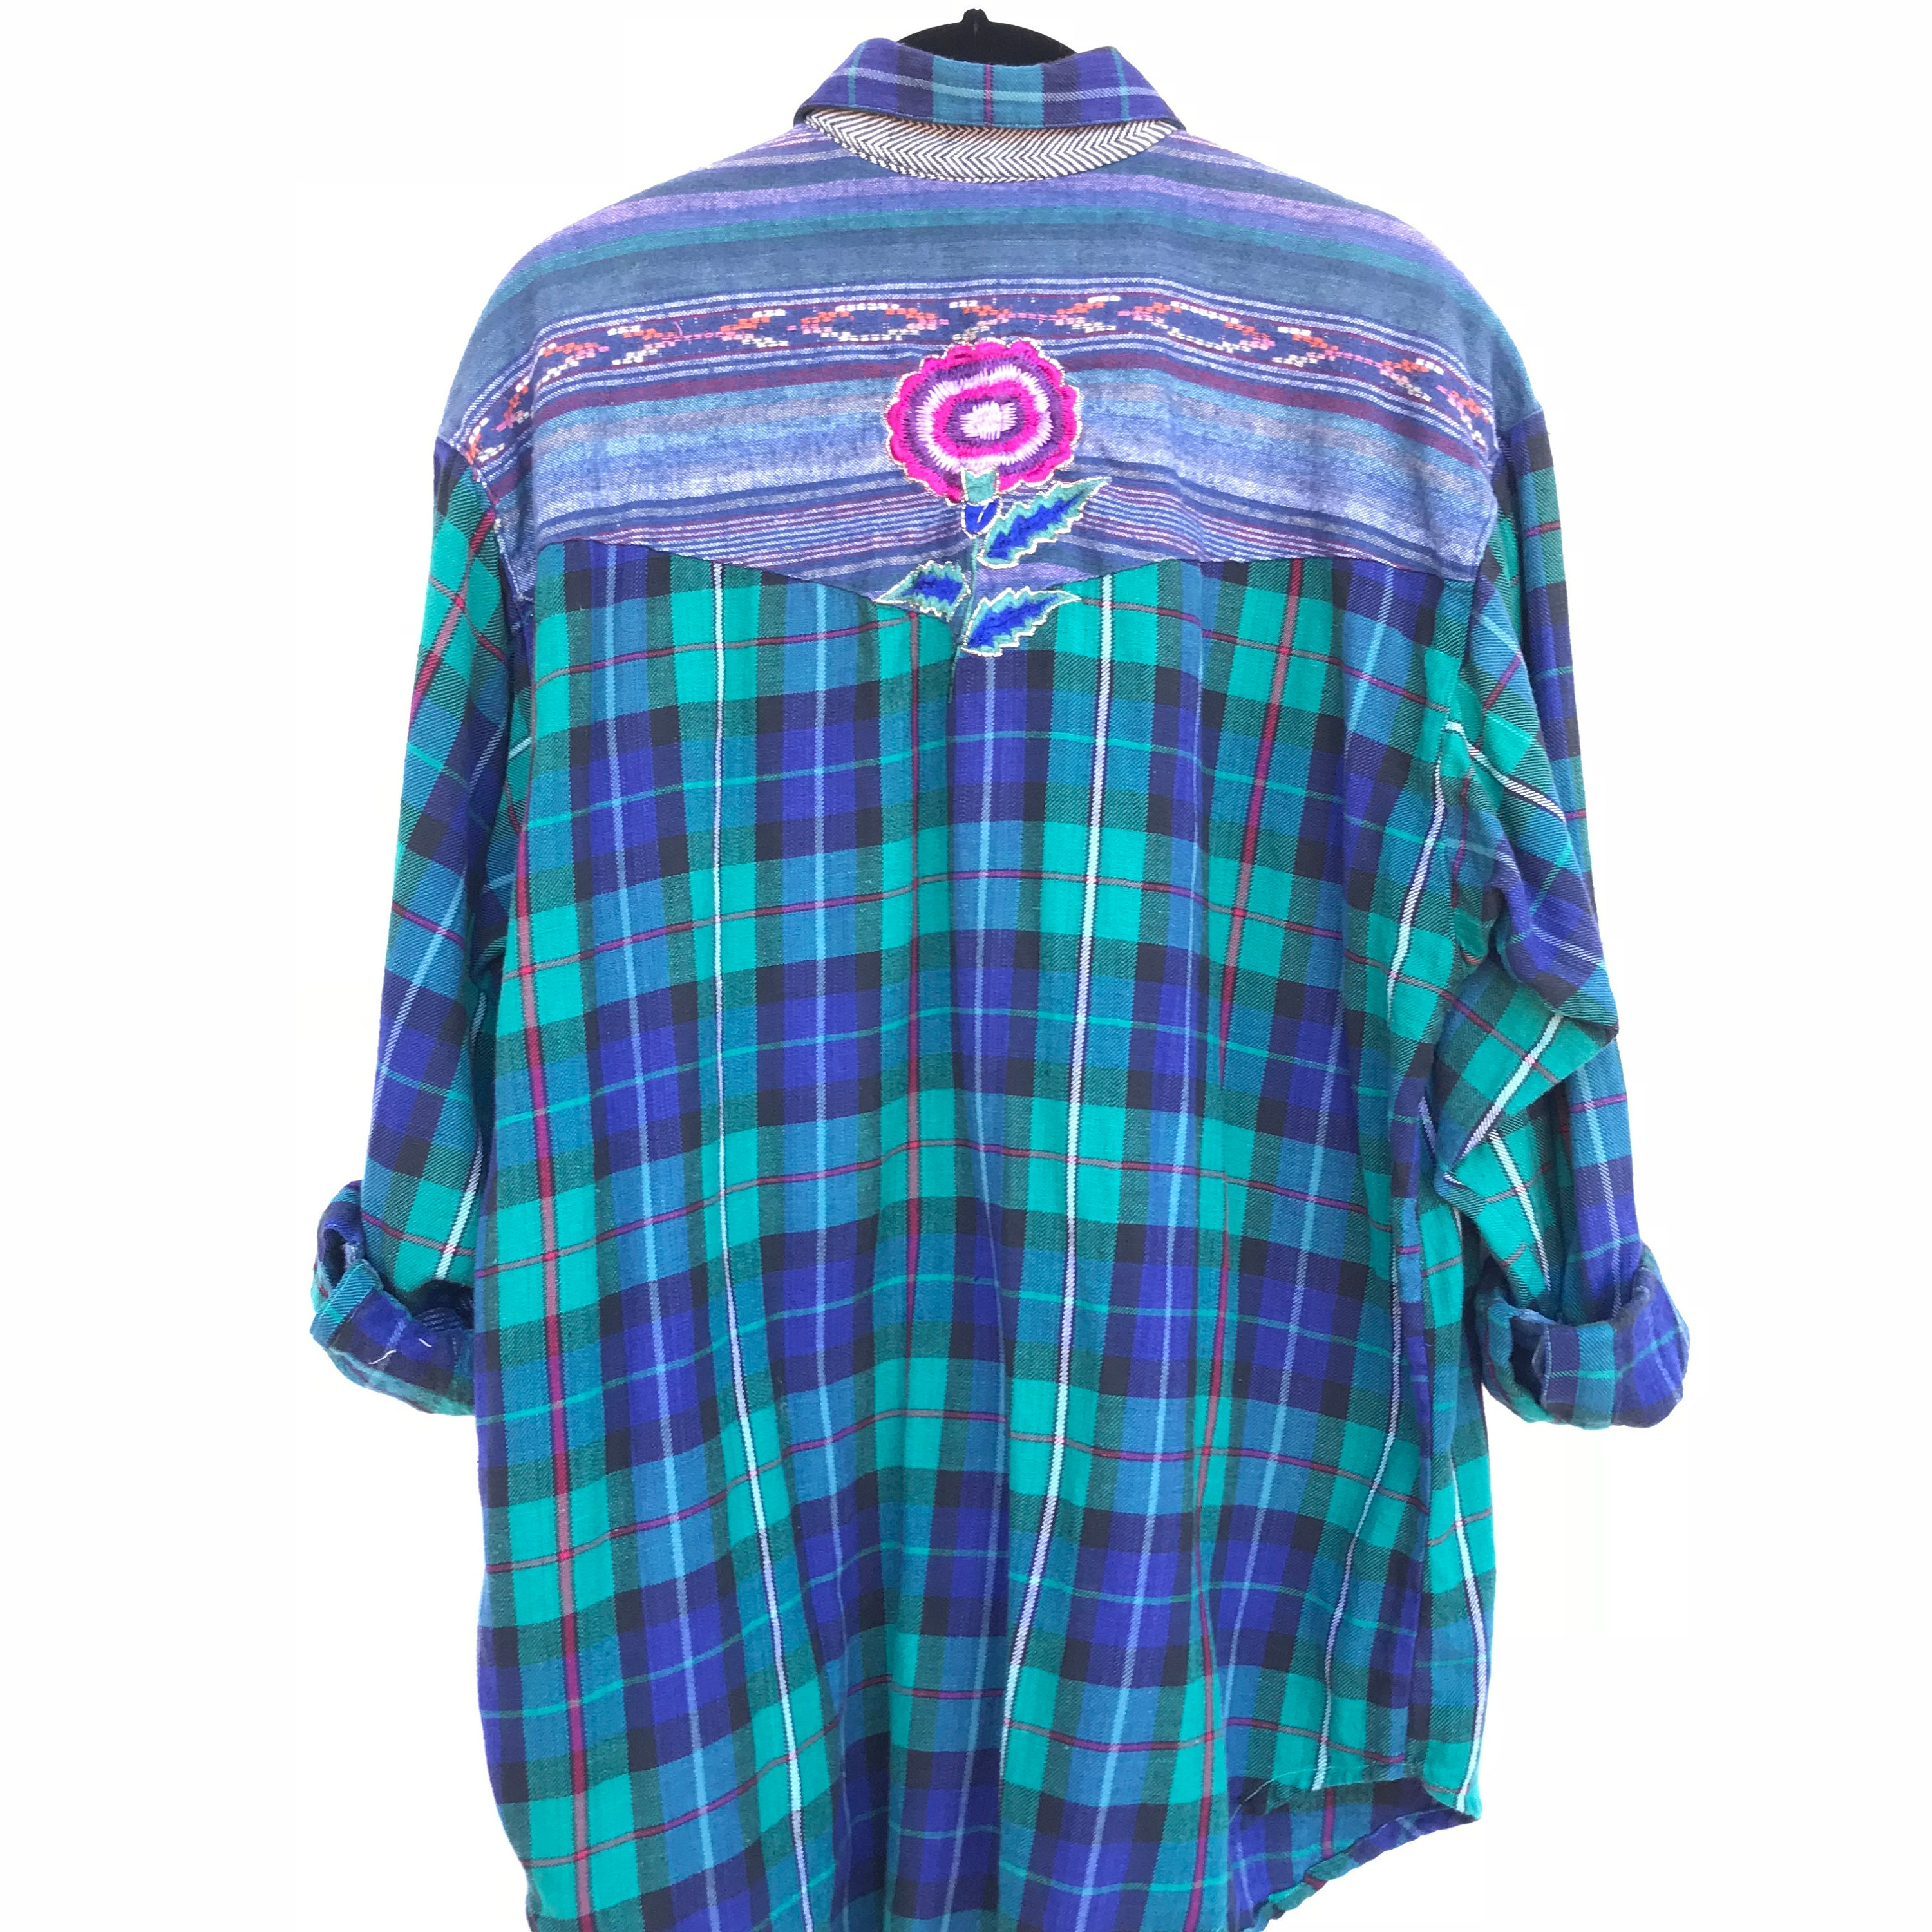 f3478d34 Vintage Flannel Shirt with Floral Embroidery, Plaid Button Down ...